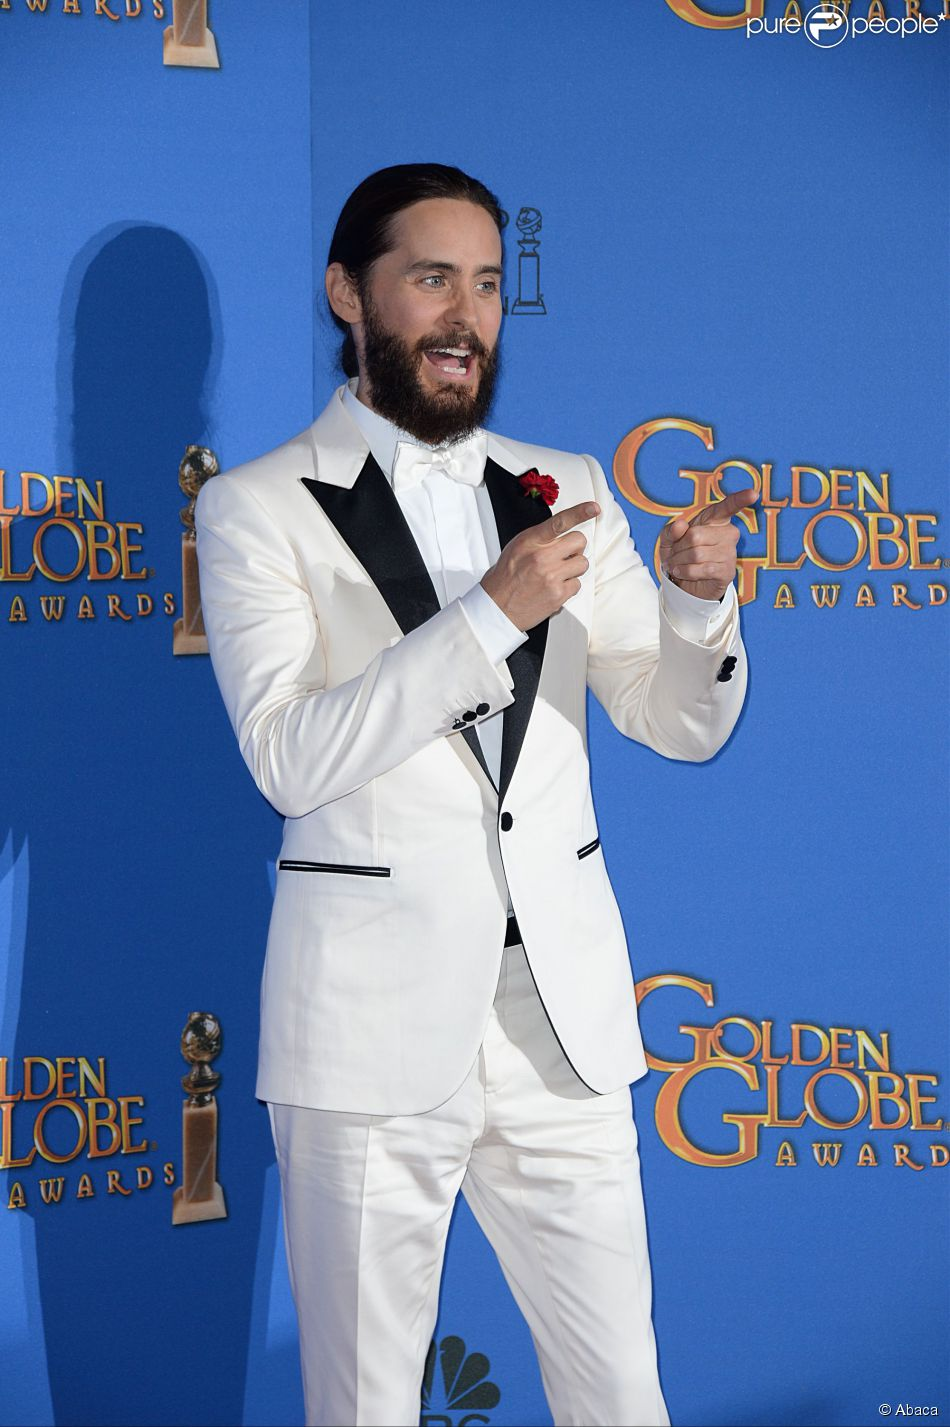 Jared Leto aux Golden Globe Awards à Beverly Hills, Los Angeles, le 11 janvier 2015.